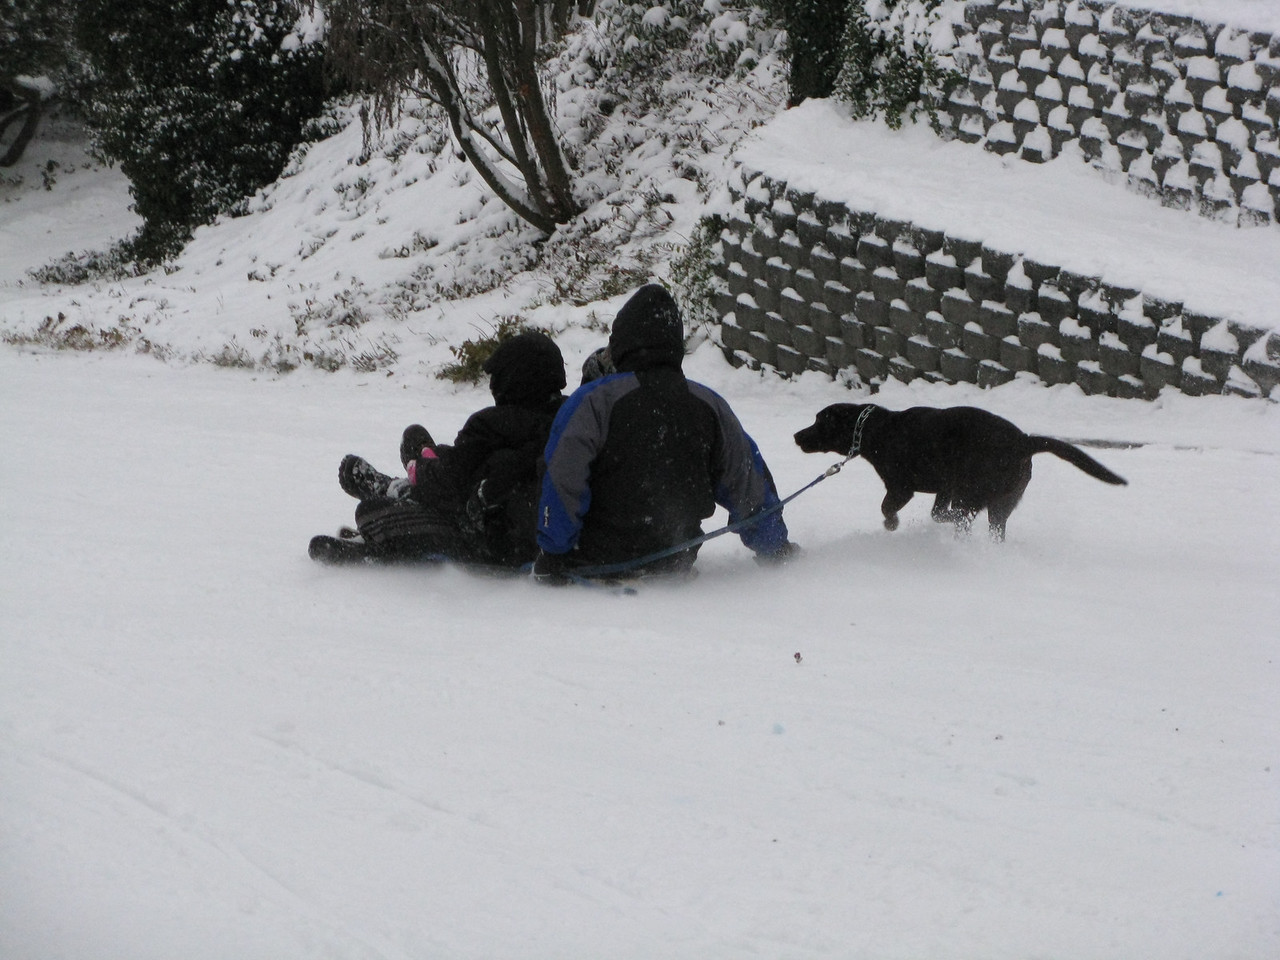 Snow is flying behind the sledders.